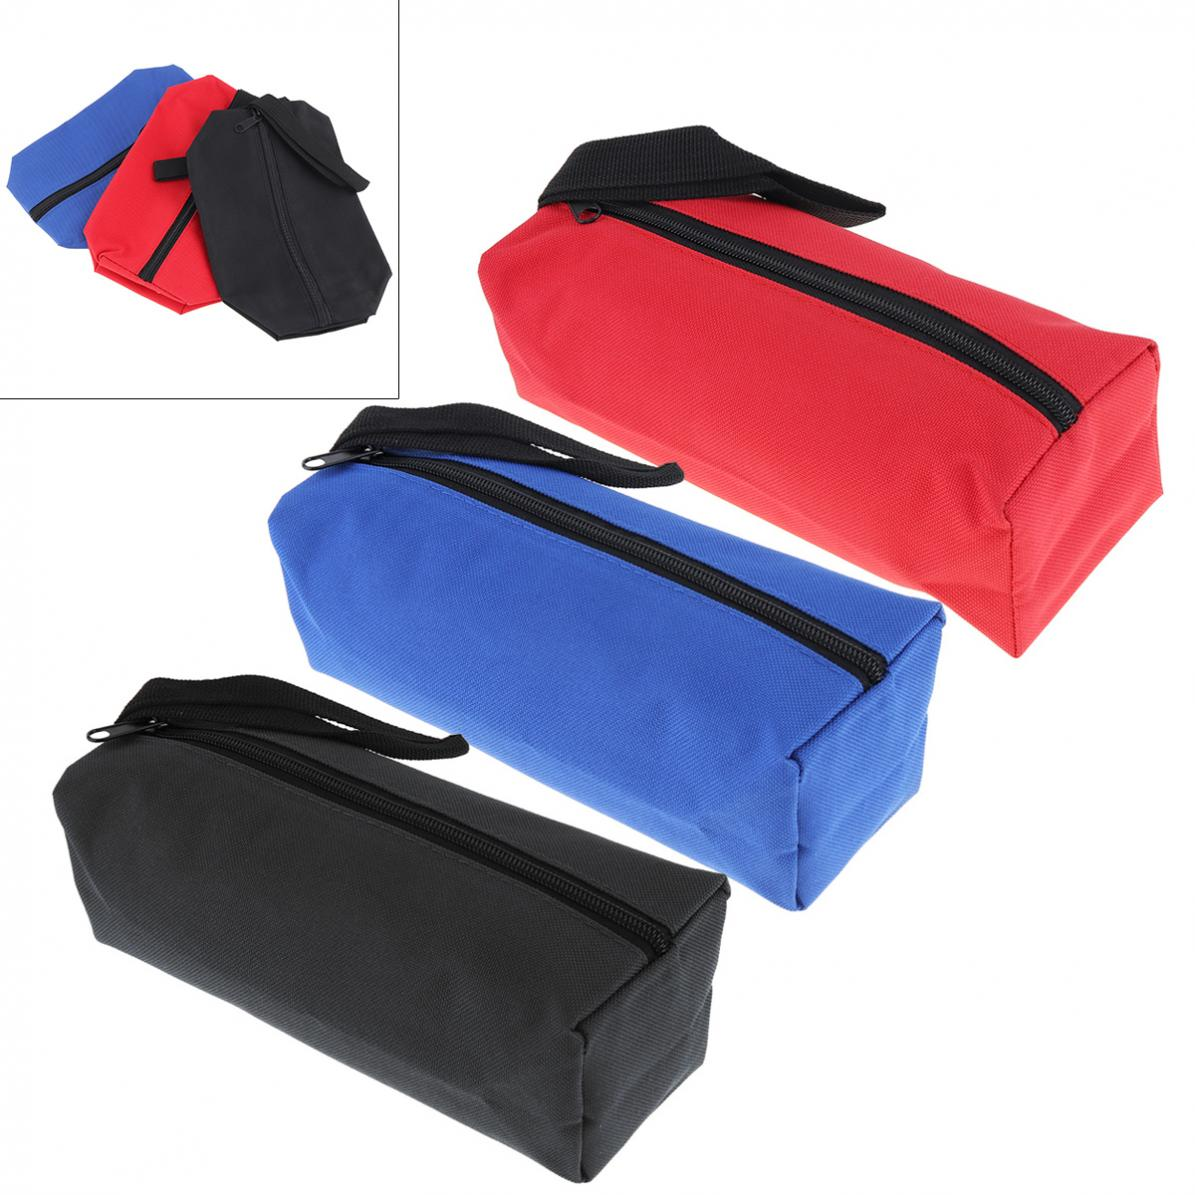 600D Multifunctional Canvas Tool Bag Oxford Cloth Parts Bag With Zipper For Maintenance Tool Storage Black / Red / Blue